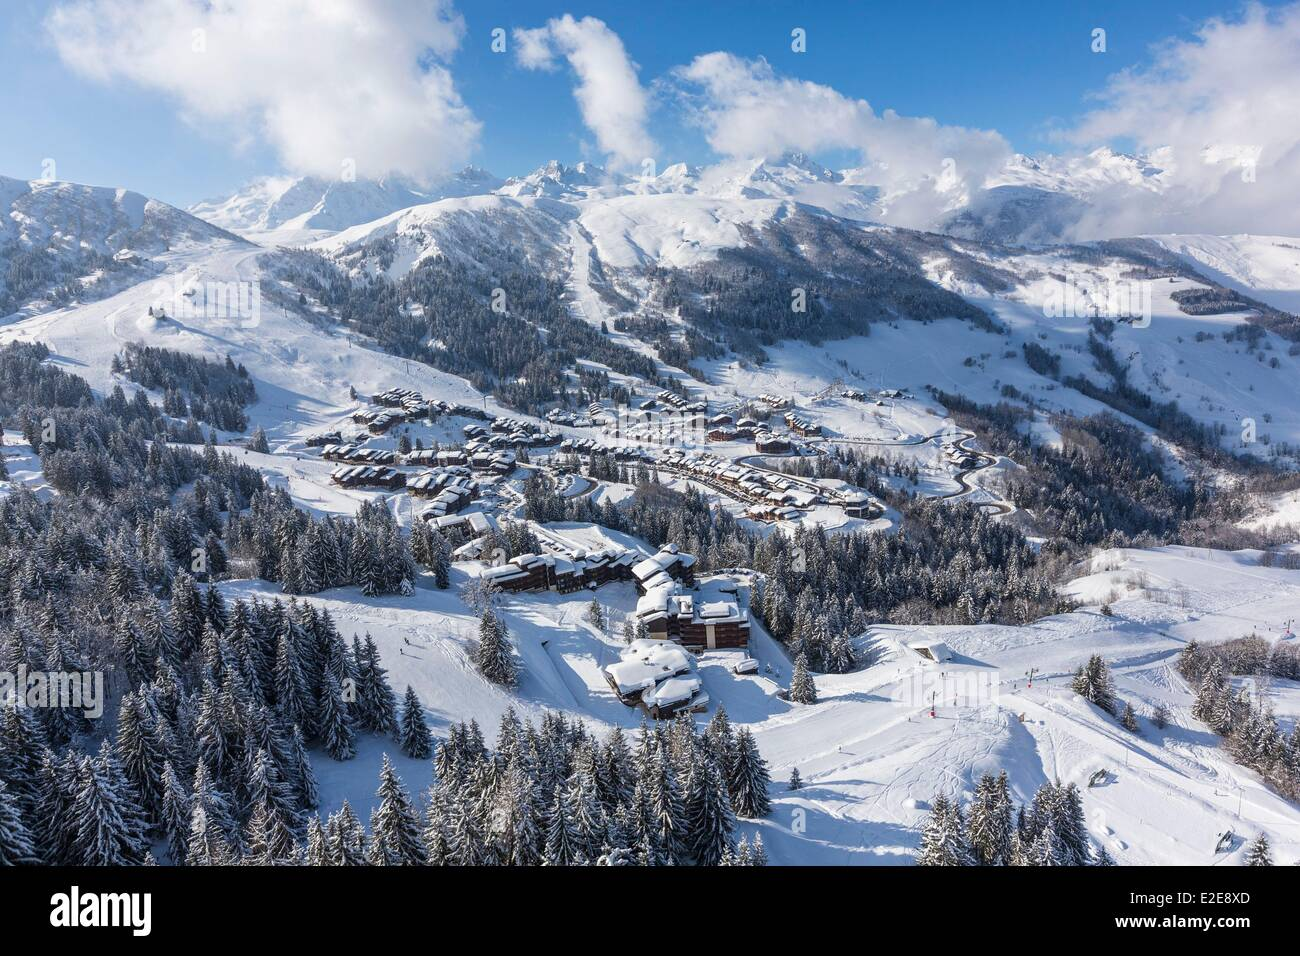 France, Savoie, Valmorel, Massif of the Vanoise, Tarentaise valley, view of the Chaine of the Lauziere (vue aerienne) - Stock Image